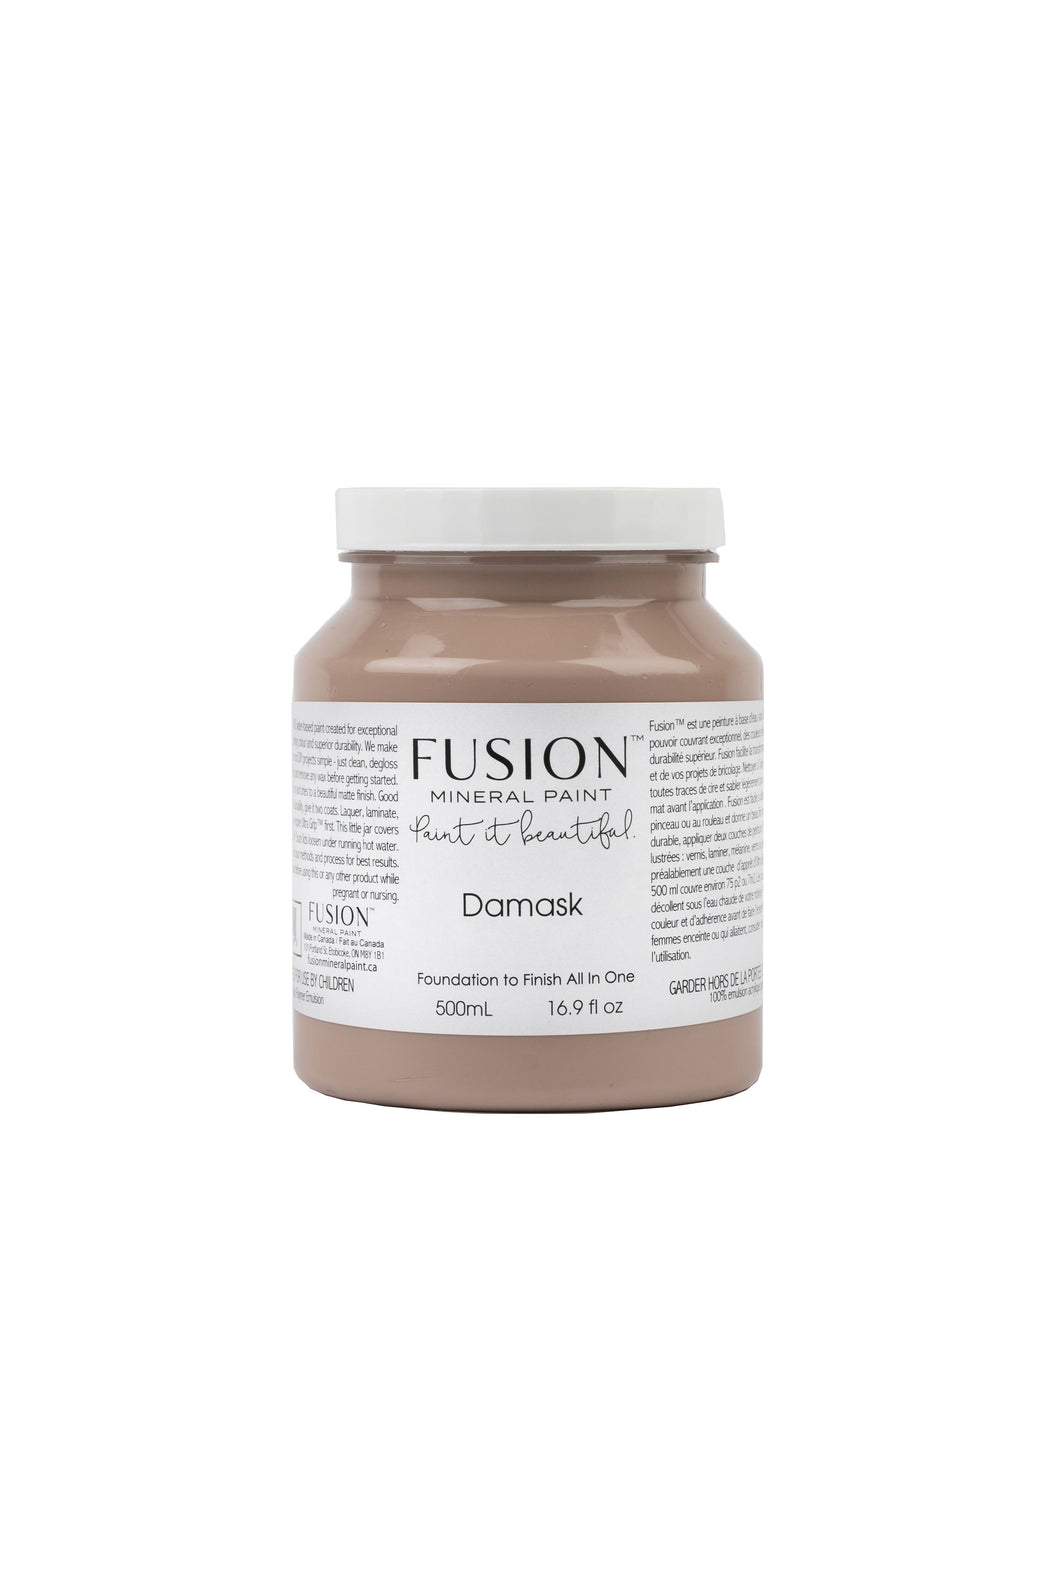 FUSION™ Mineral Paint - Damask